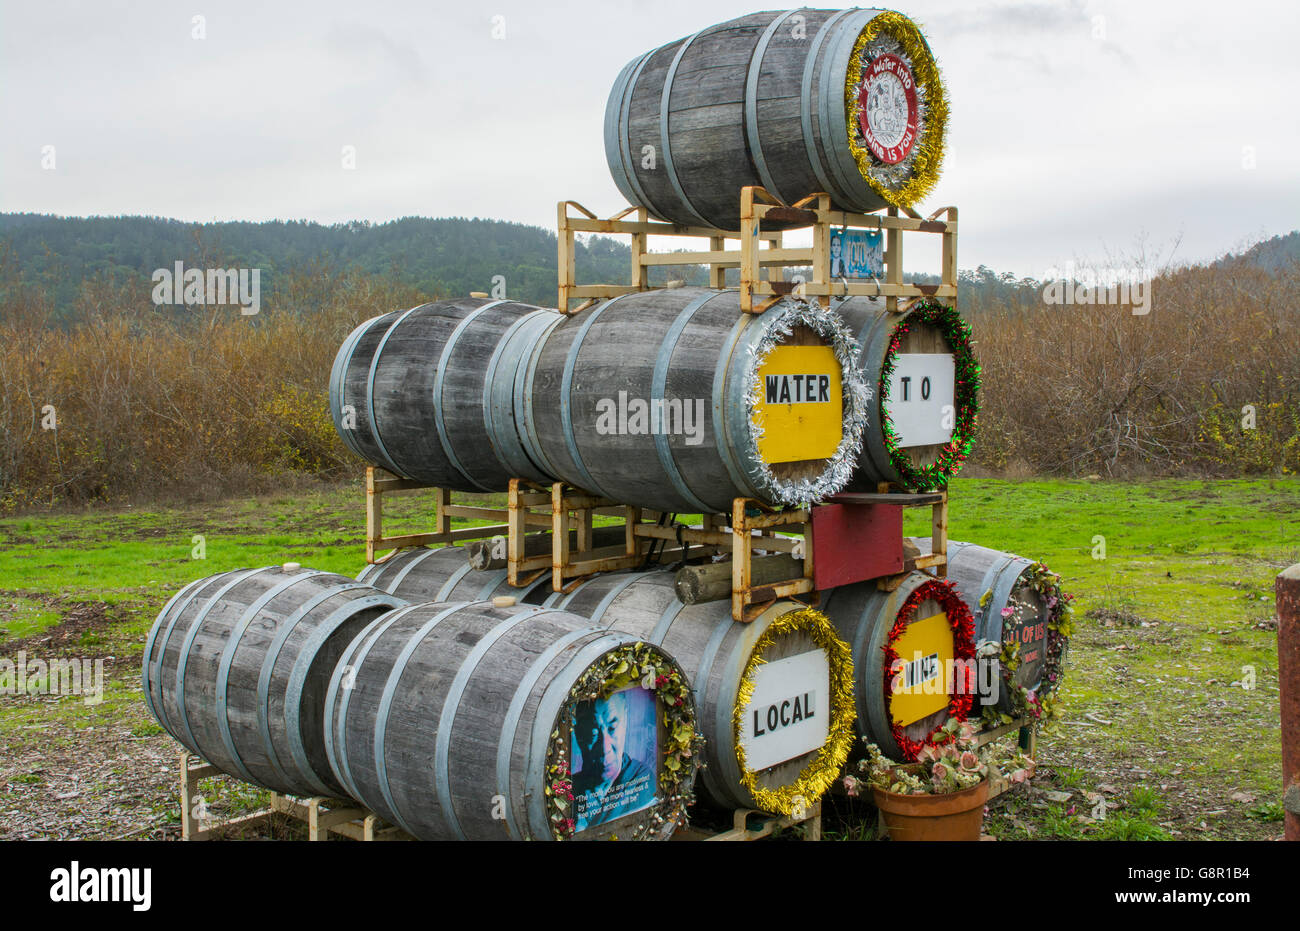 Point Reyes California Pacific Coast Highway Roiute 1 or PCH #1 wine barrels water to wine sign - Stock Image